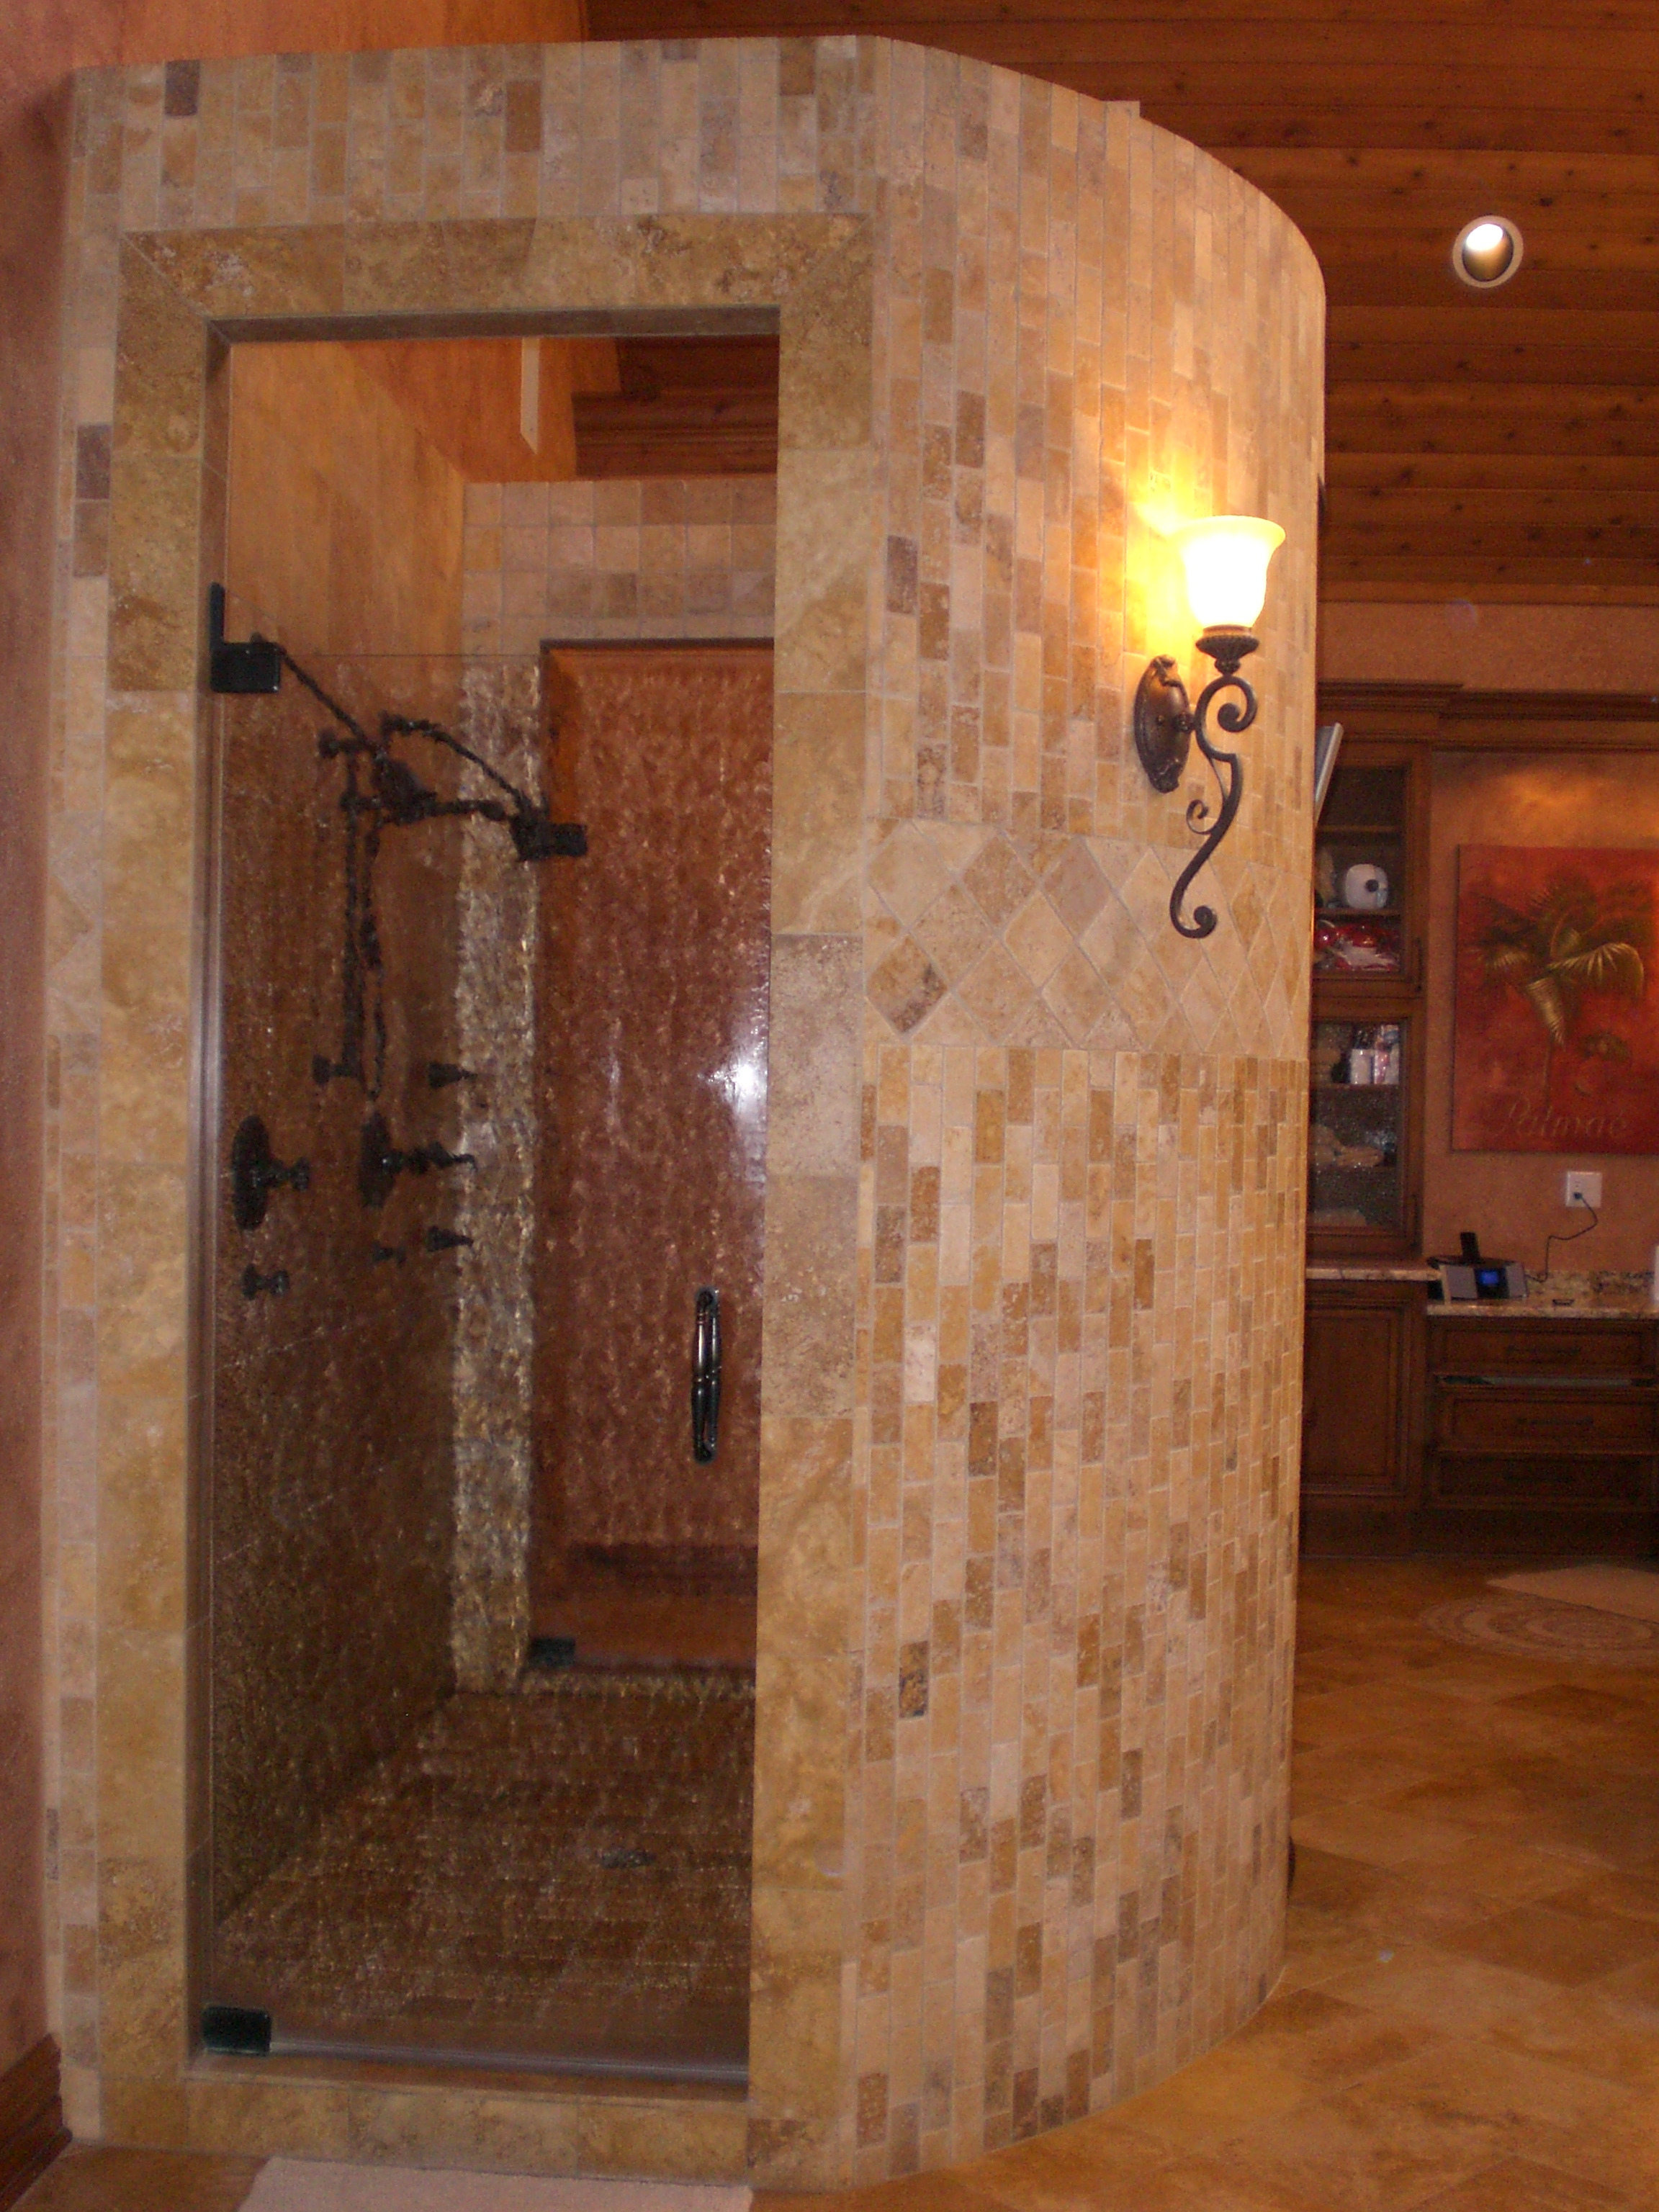 shower designs without doors bathroom home interior design along with more images of shower designs bathroom photo shower designs